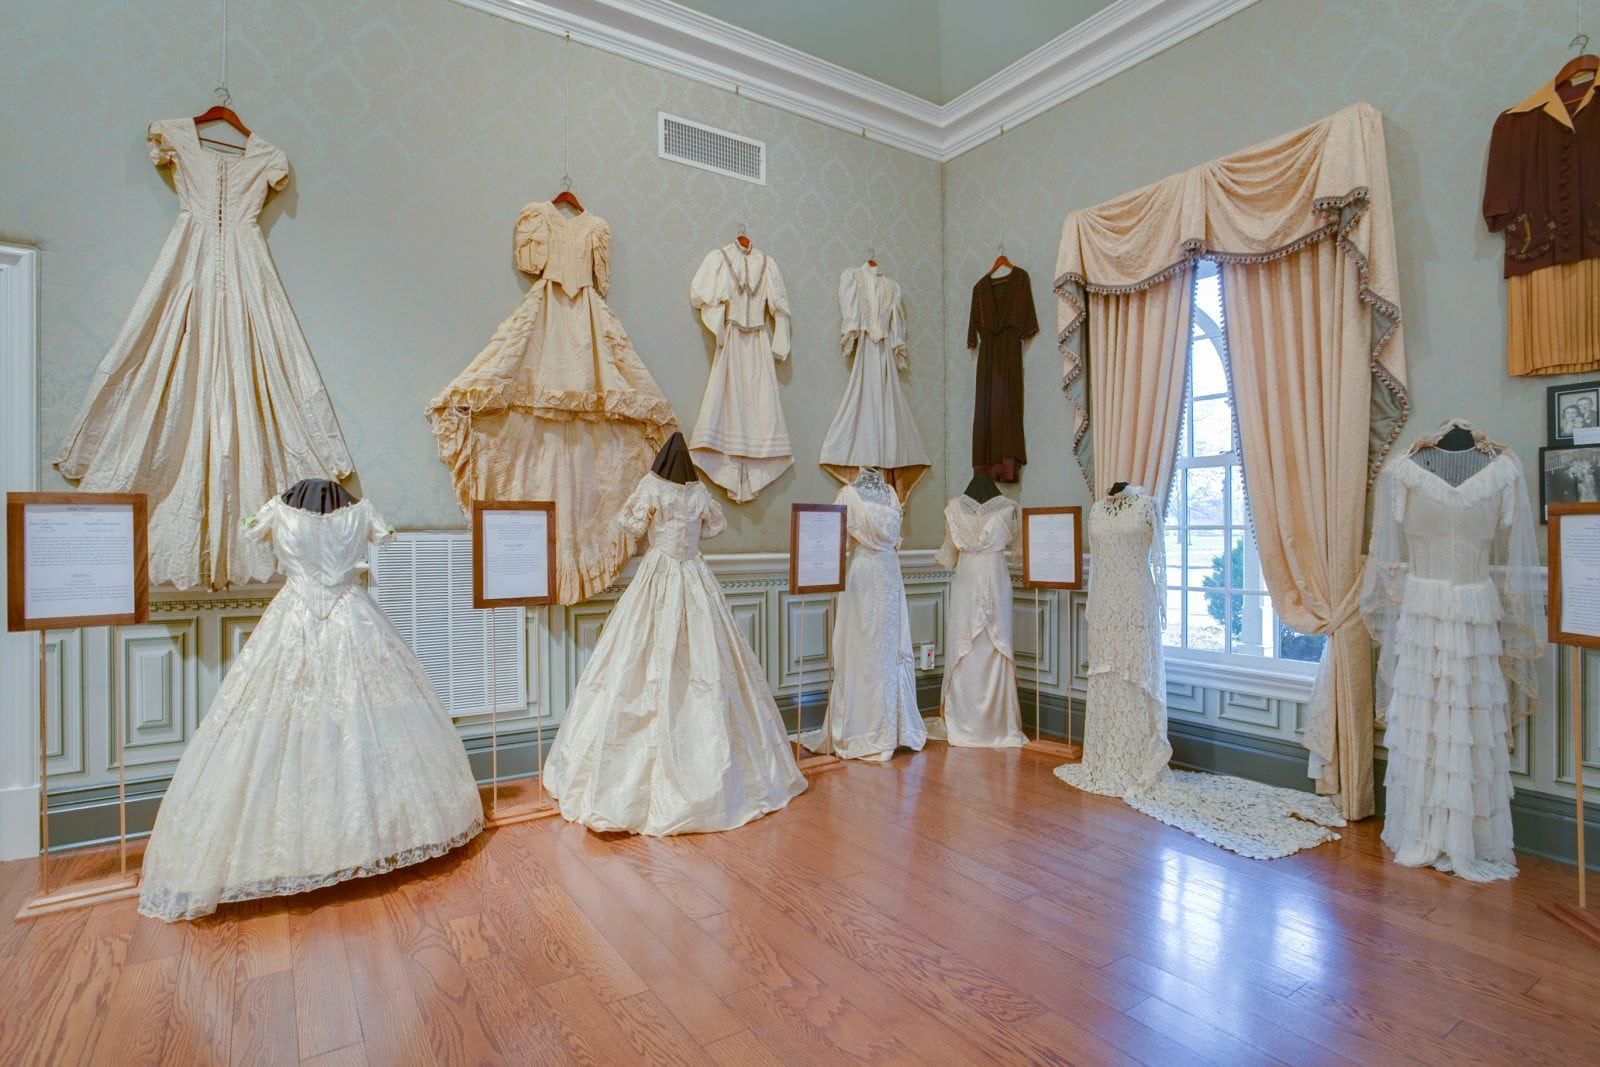 Wedding Dresses Through The Decades Exhibit At Oaklands Mansion